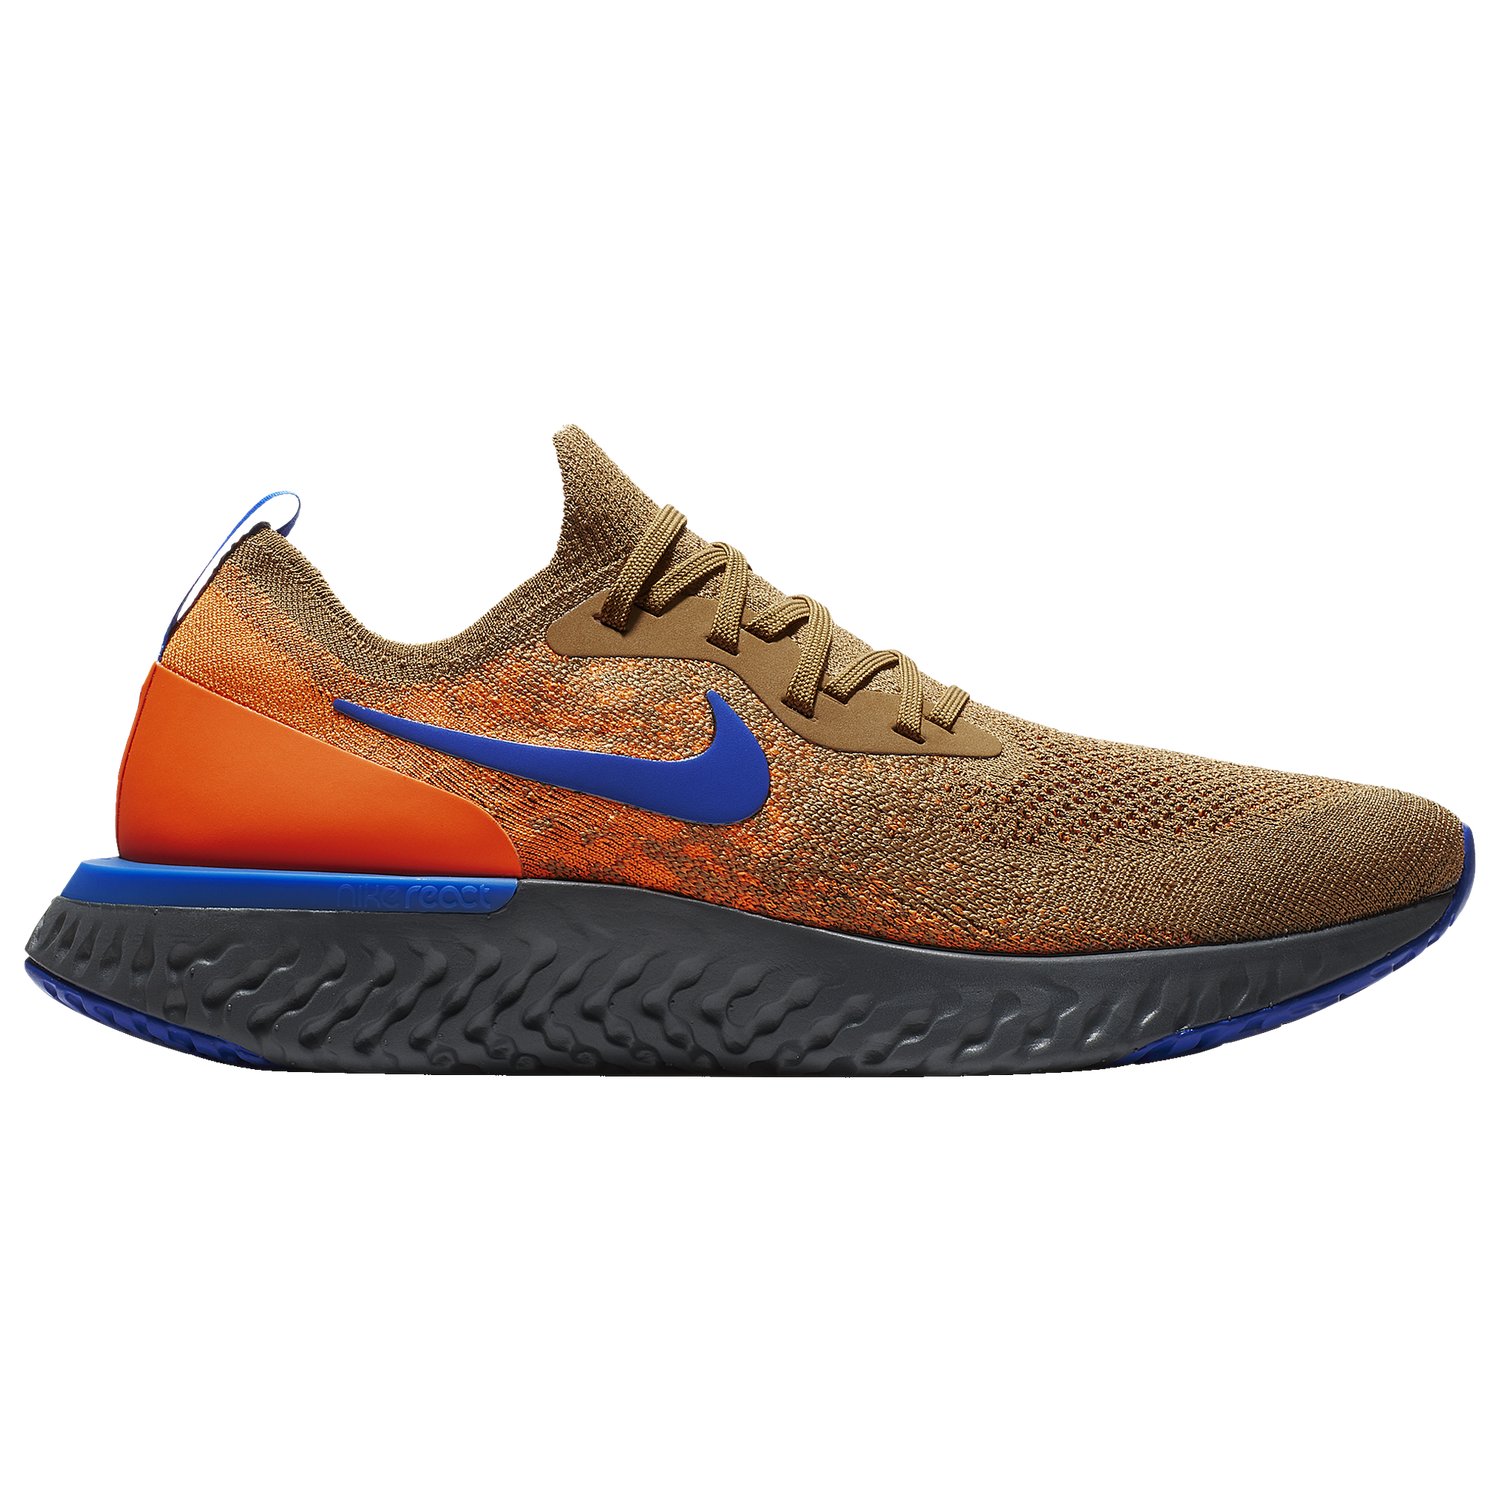 quality design 013c2 c6905 cheapest nike air force 1 high lv8 mens 53408 a1a9c  switzerland nike epic  react flyknit mens b91a3 f2056